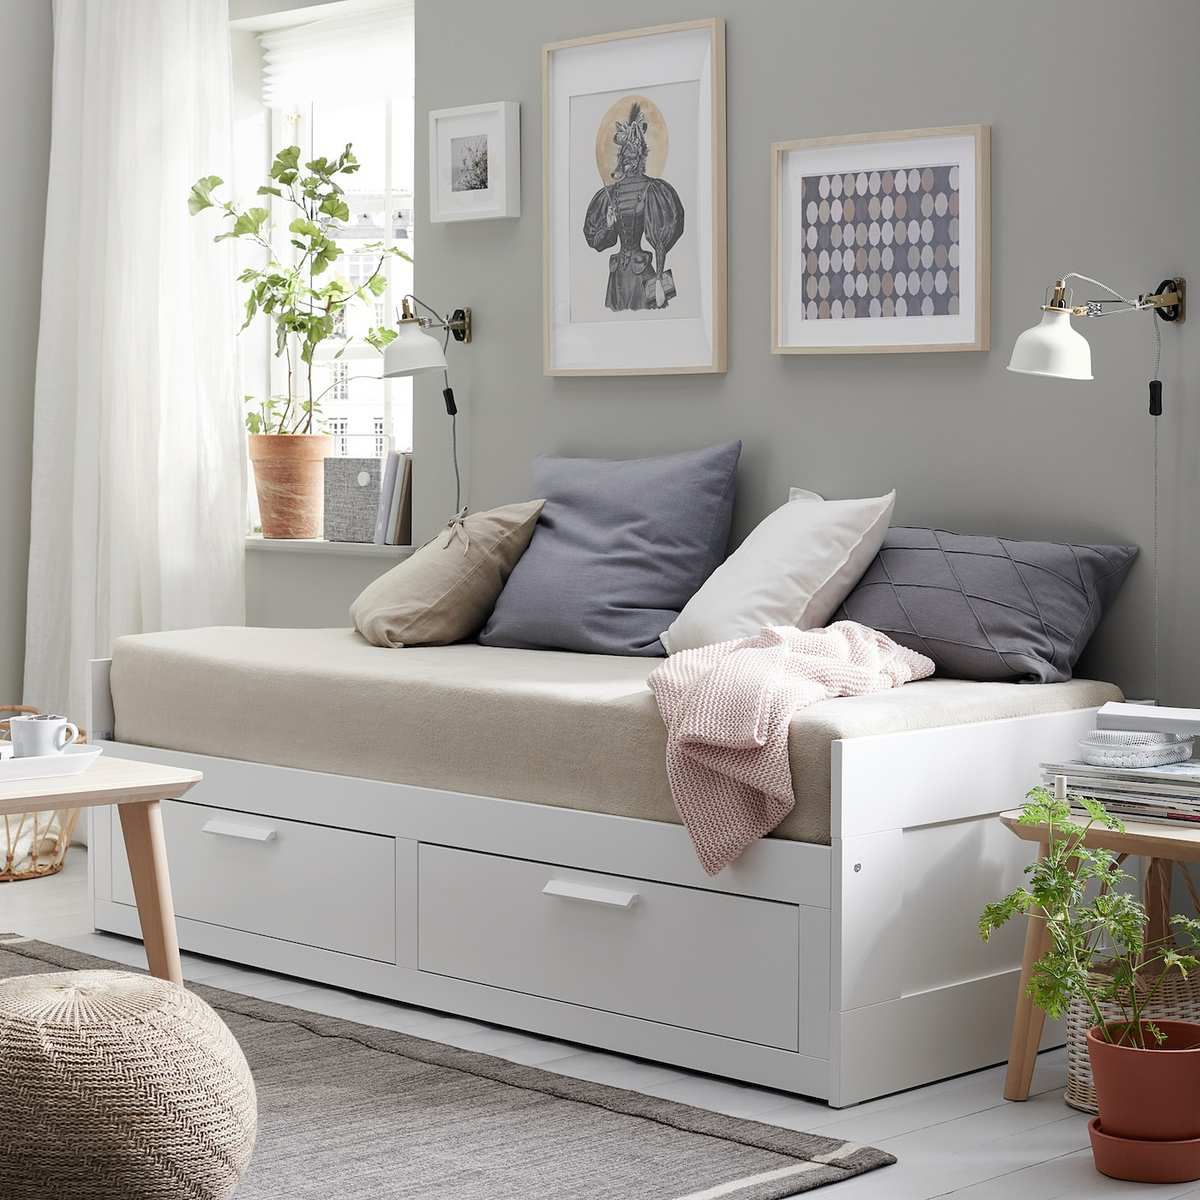 White daybed with beige padding.